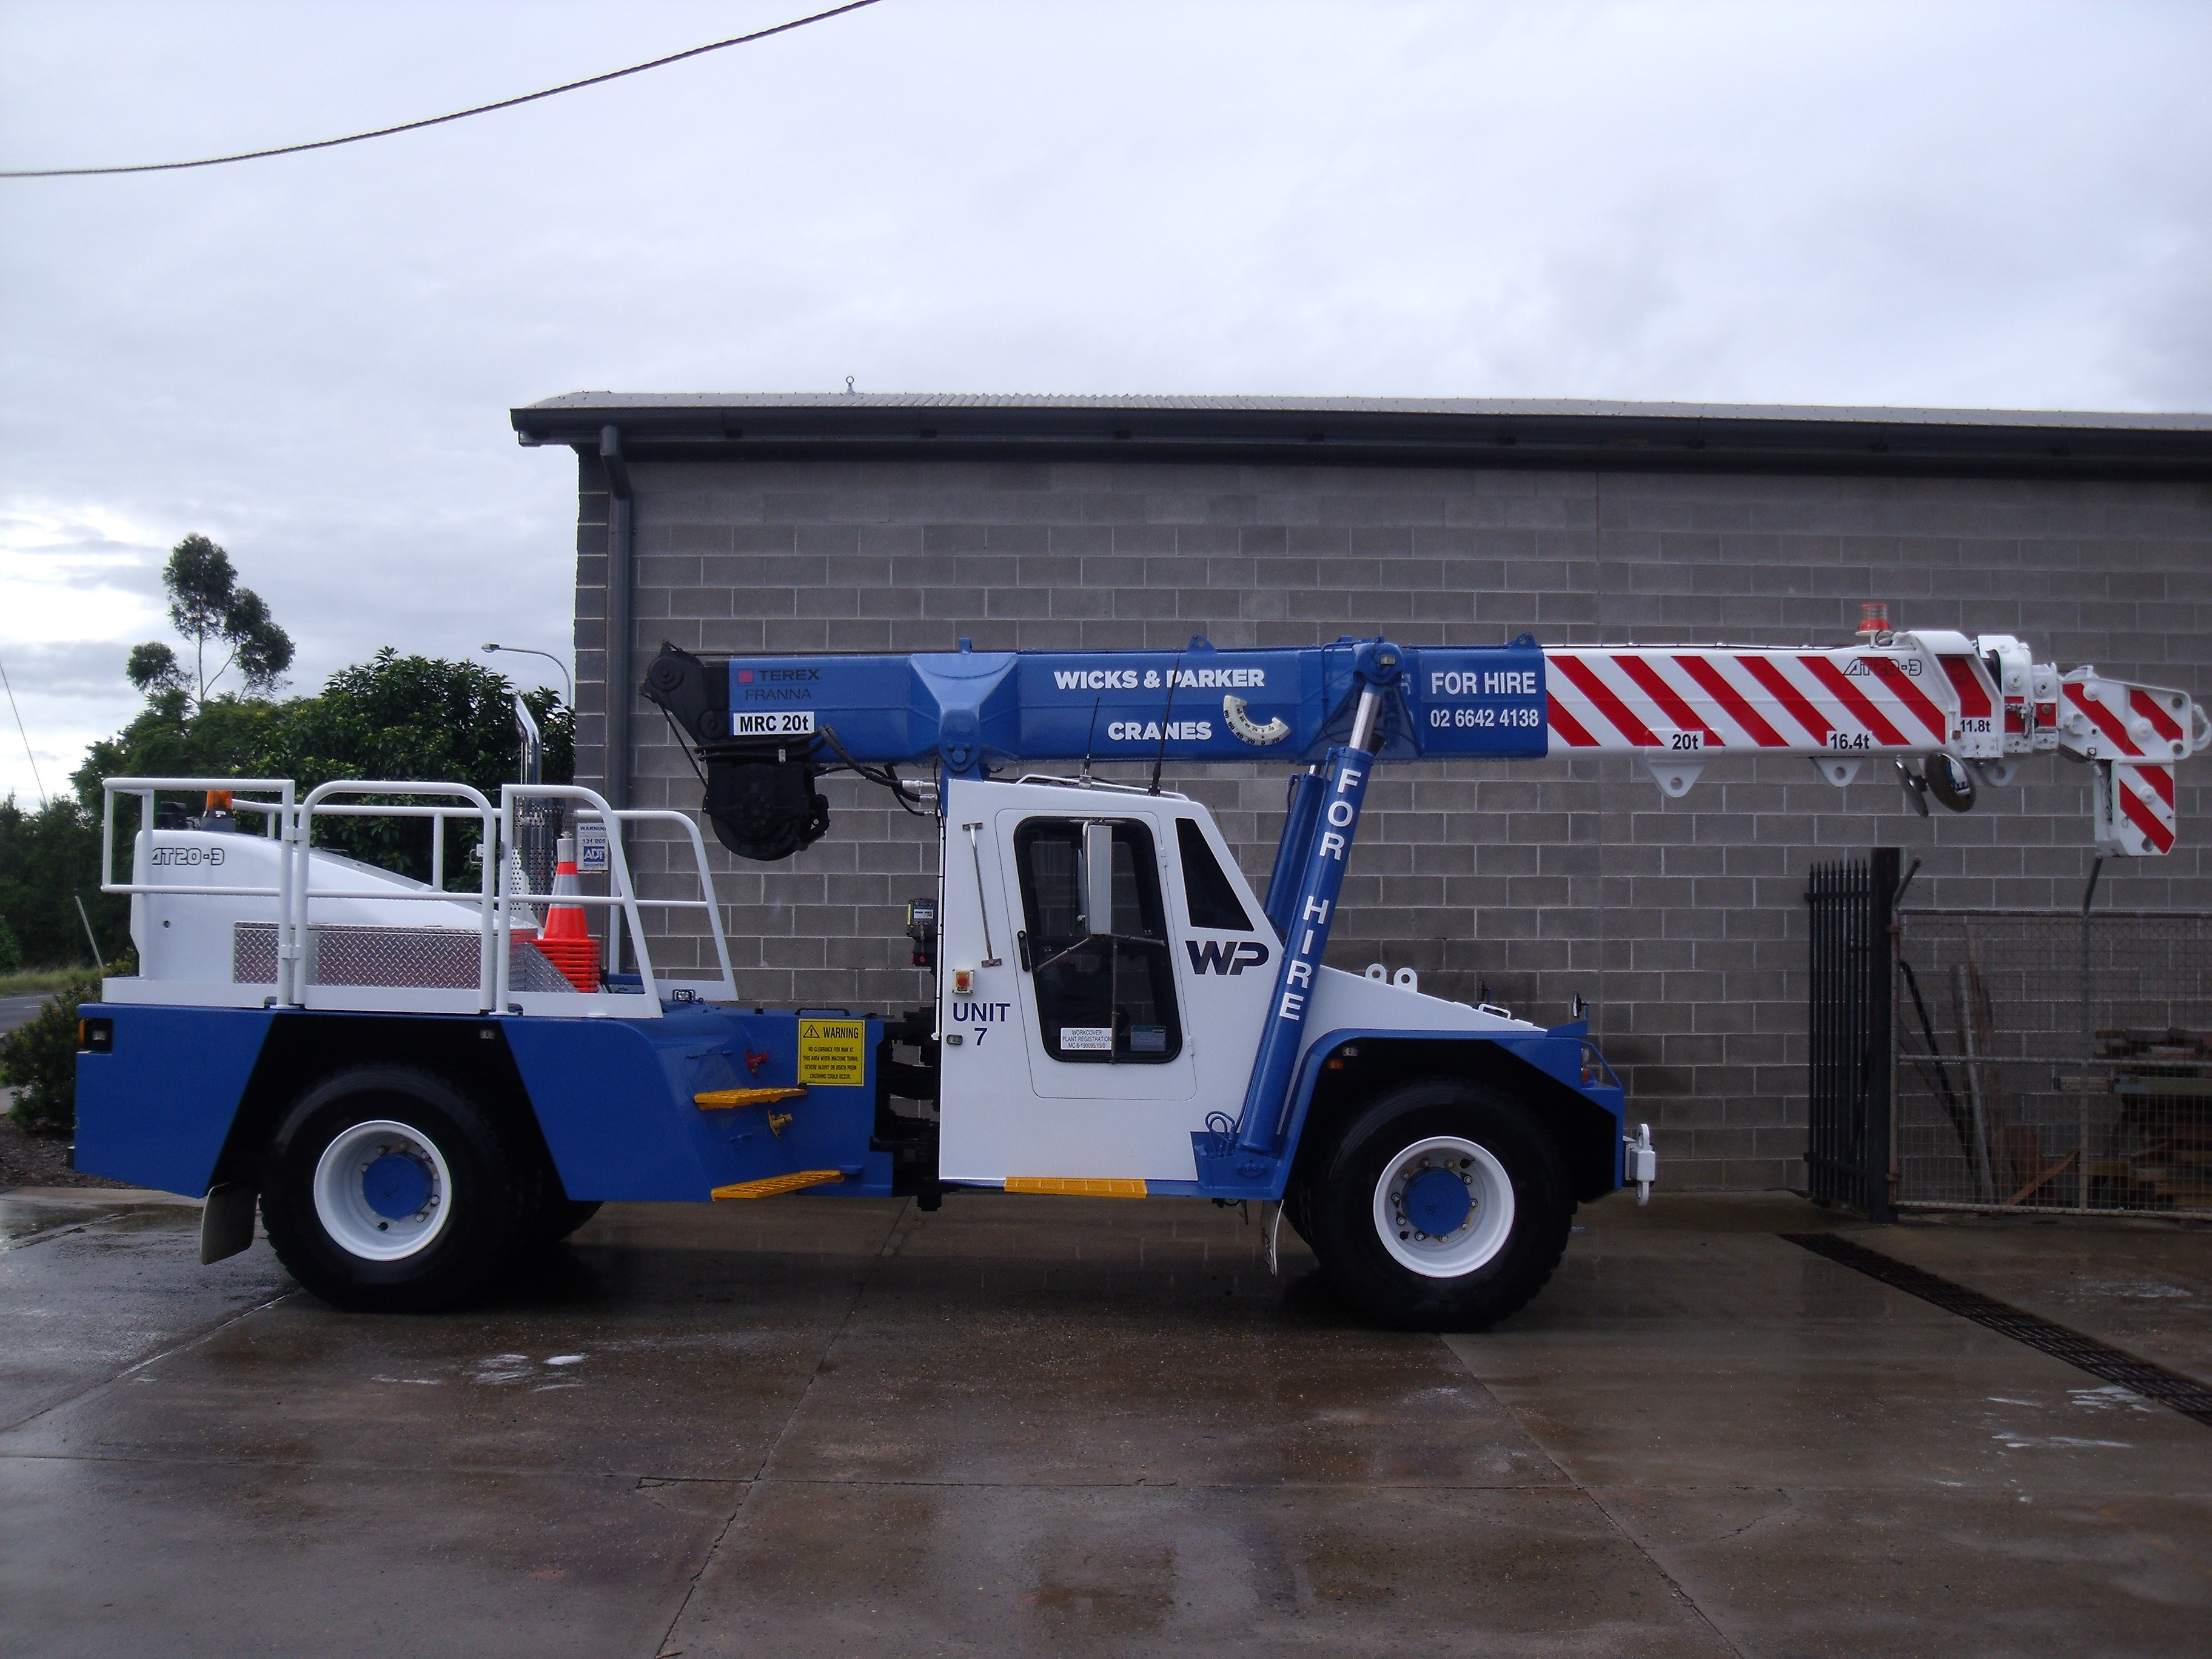 11t - 20t SWL Cranes for hire - Wicks and Parker Cranes